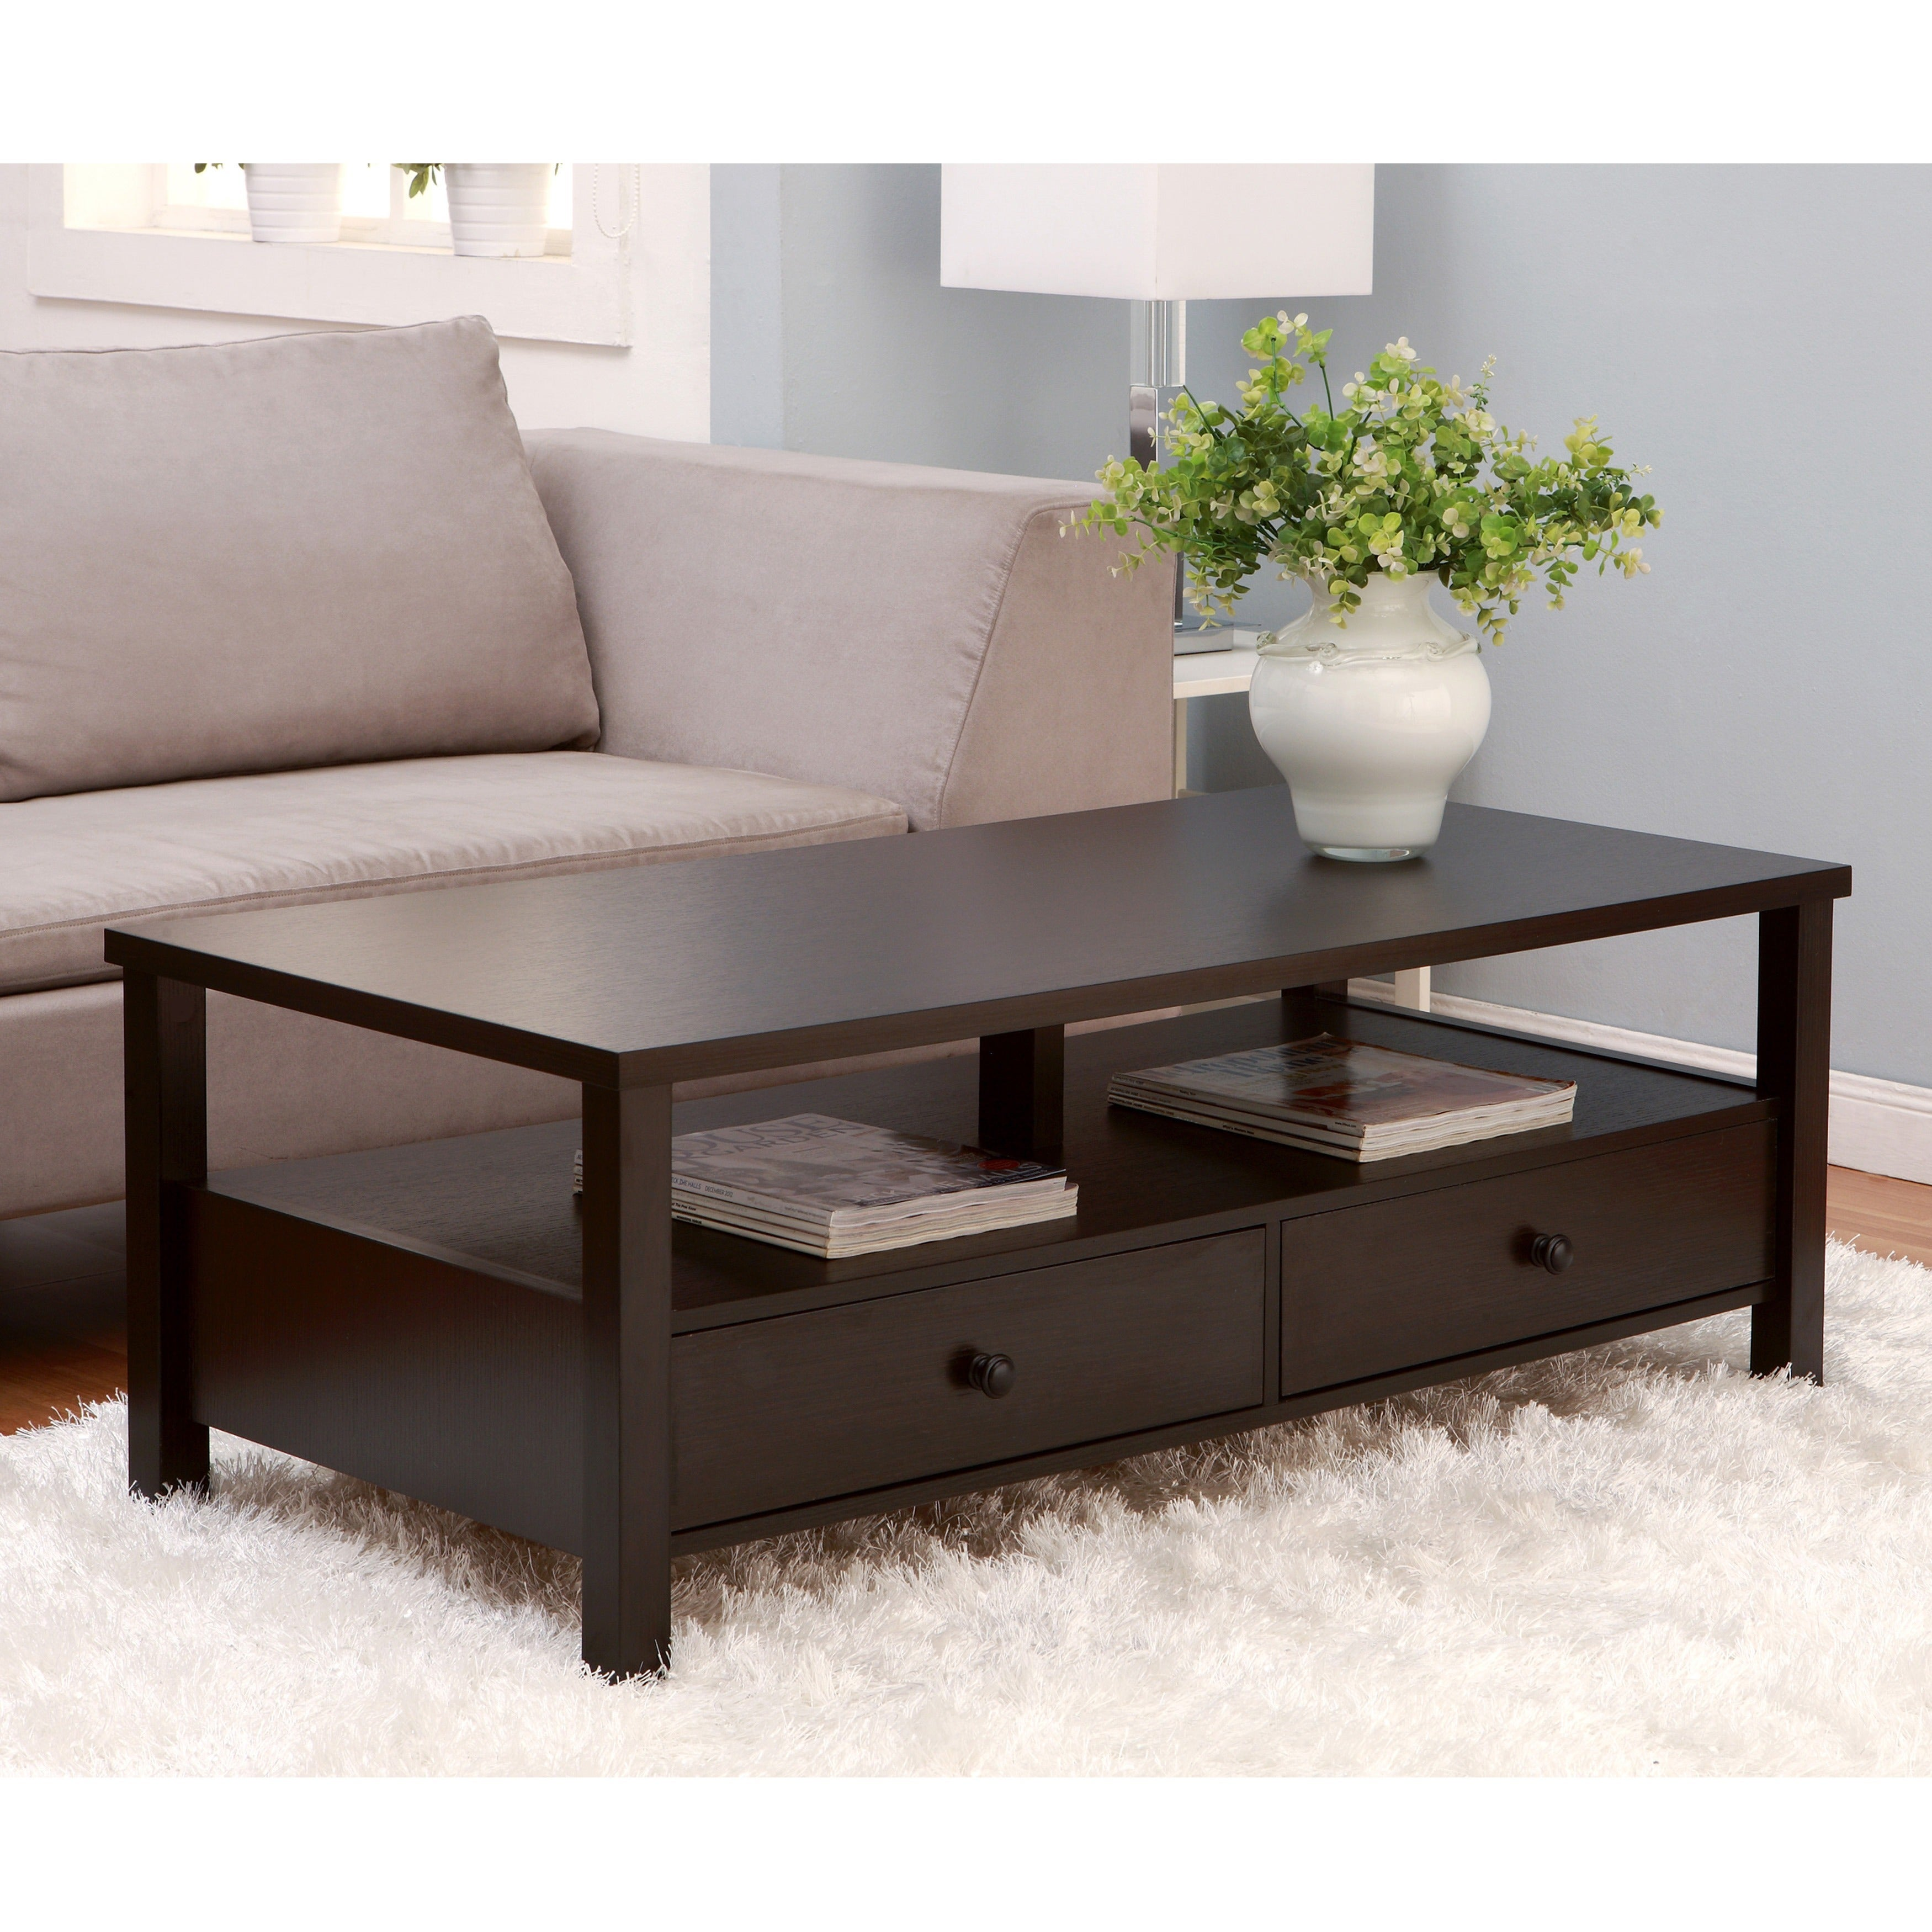 Style Livingroom Furniture Modern 2 Drawer Storage Coffee Table EBay